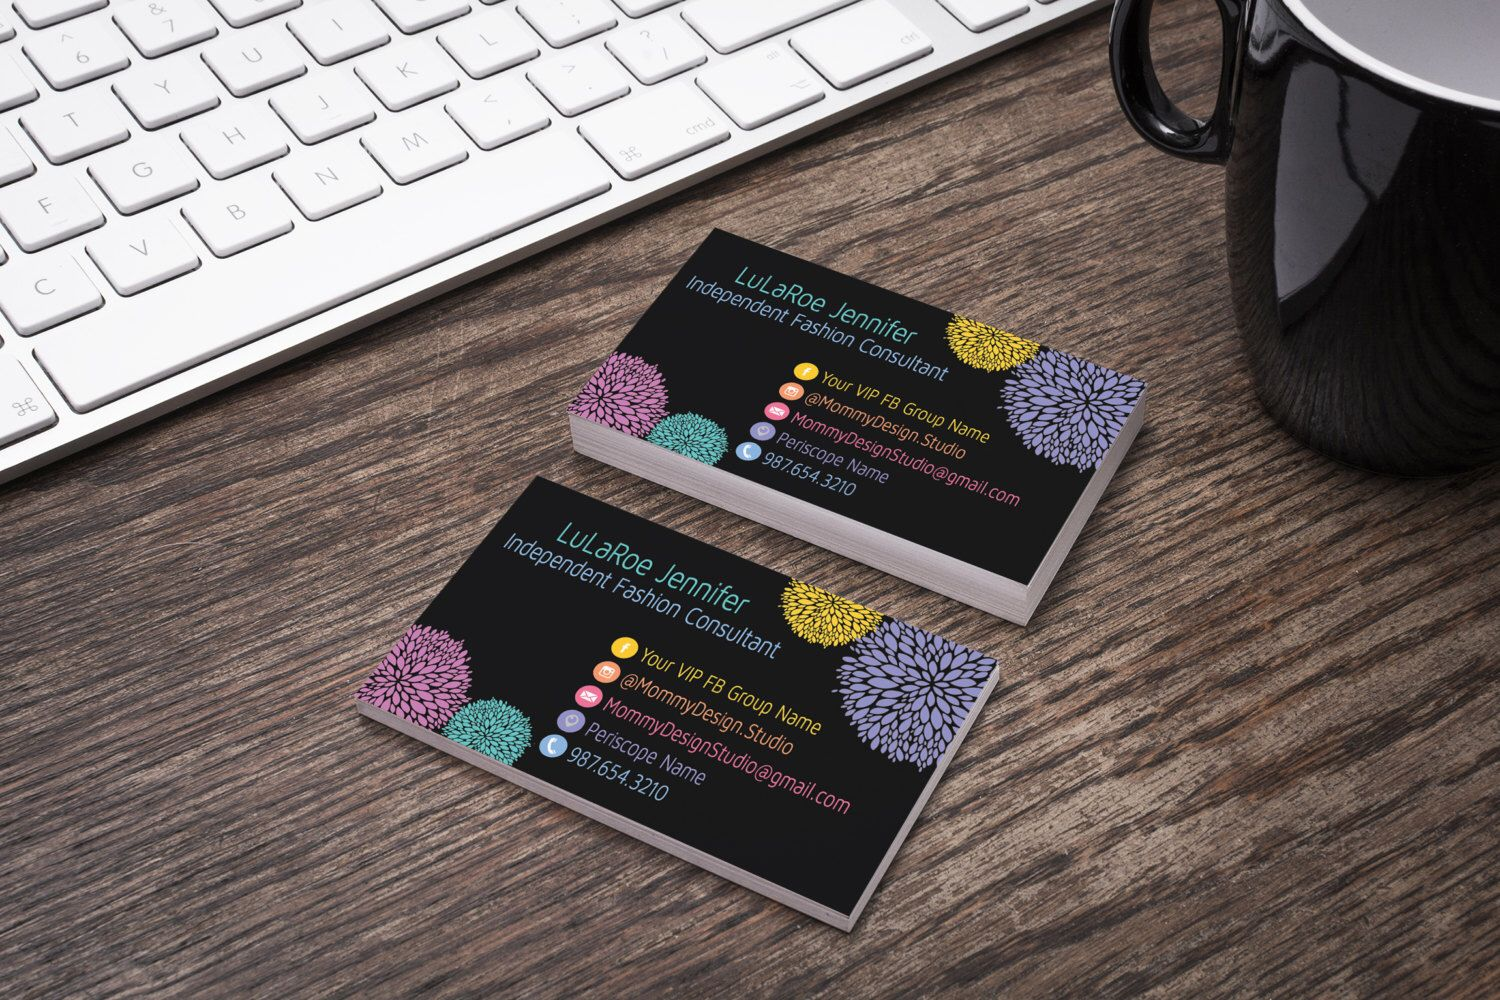 Multi colored pompom flowers ho approved fonts colors white logo multi colored pompom flowers ho approved fonts colors white logo available rack dividers bundle kit scratch off card caught card pdf colourmoves